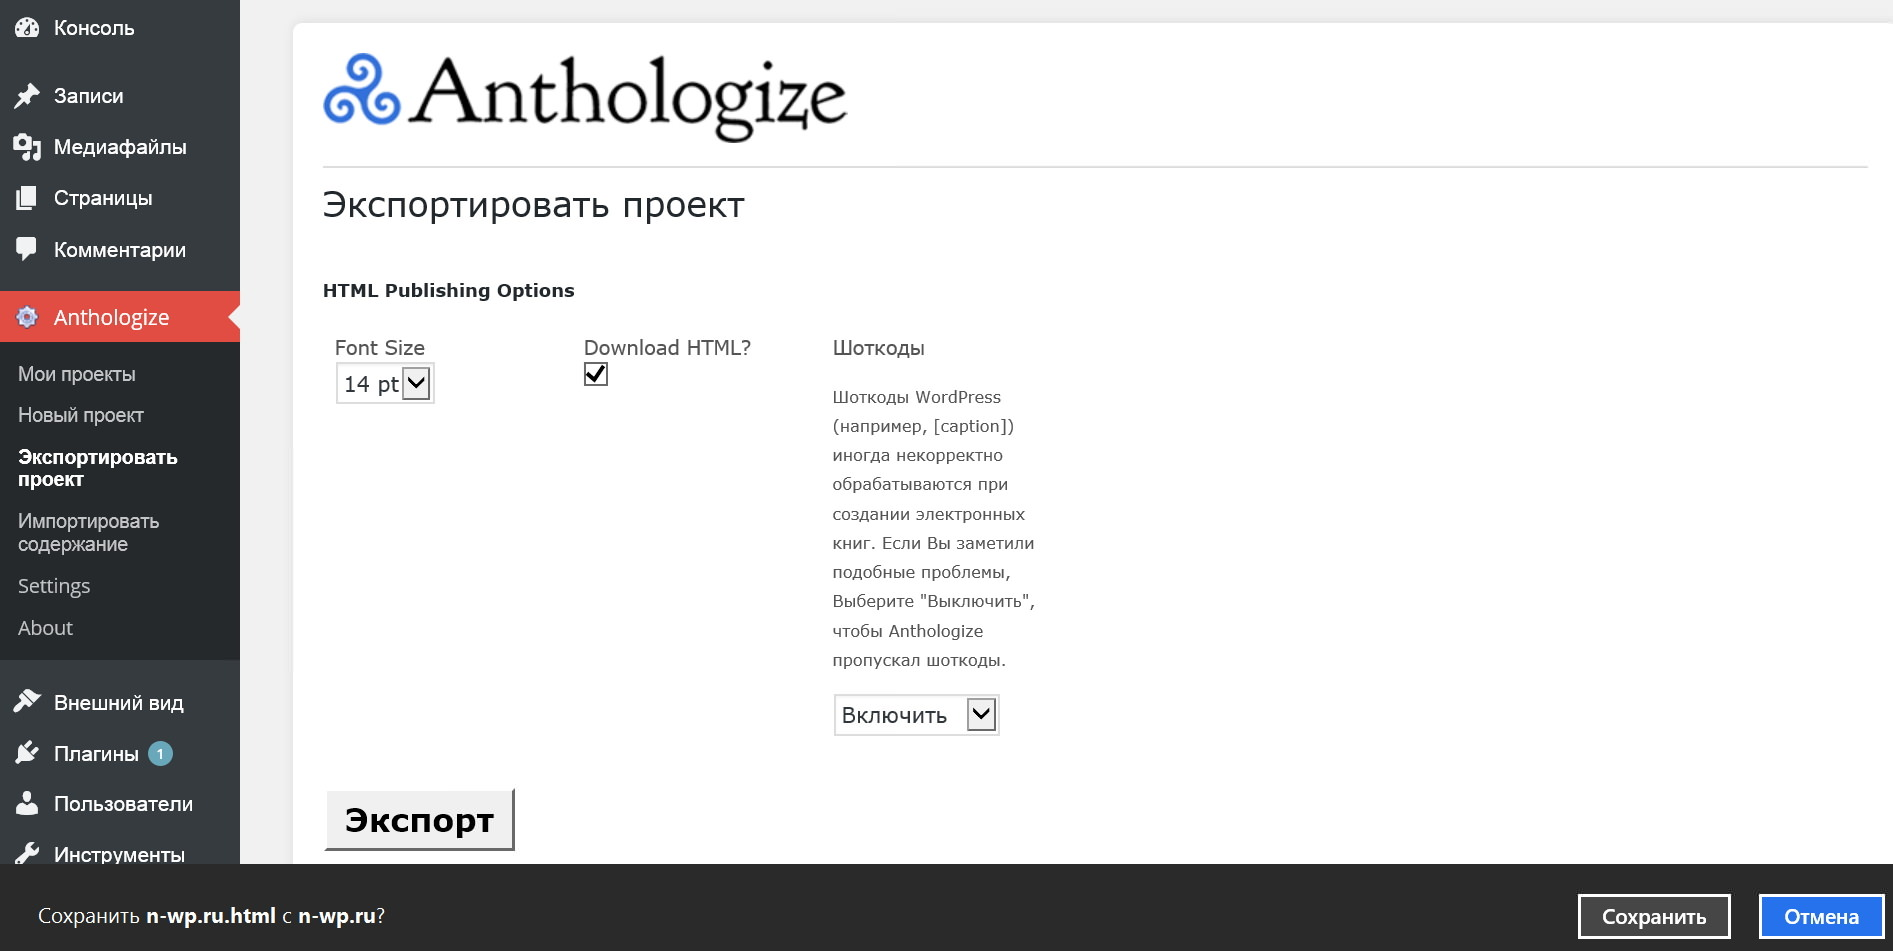 Anthologize — плагин для конвертирования содержимого блога в электронную книгу